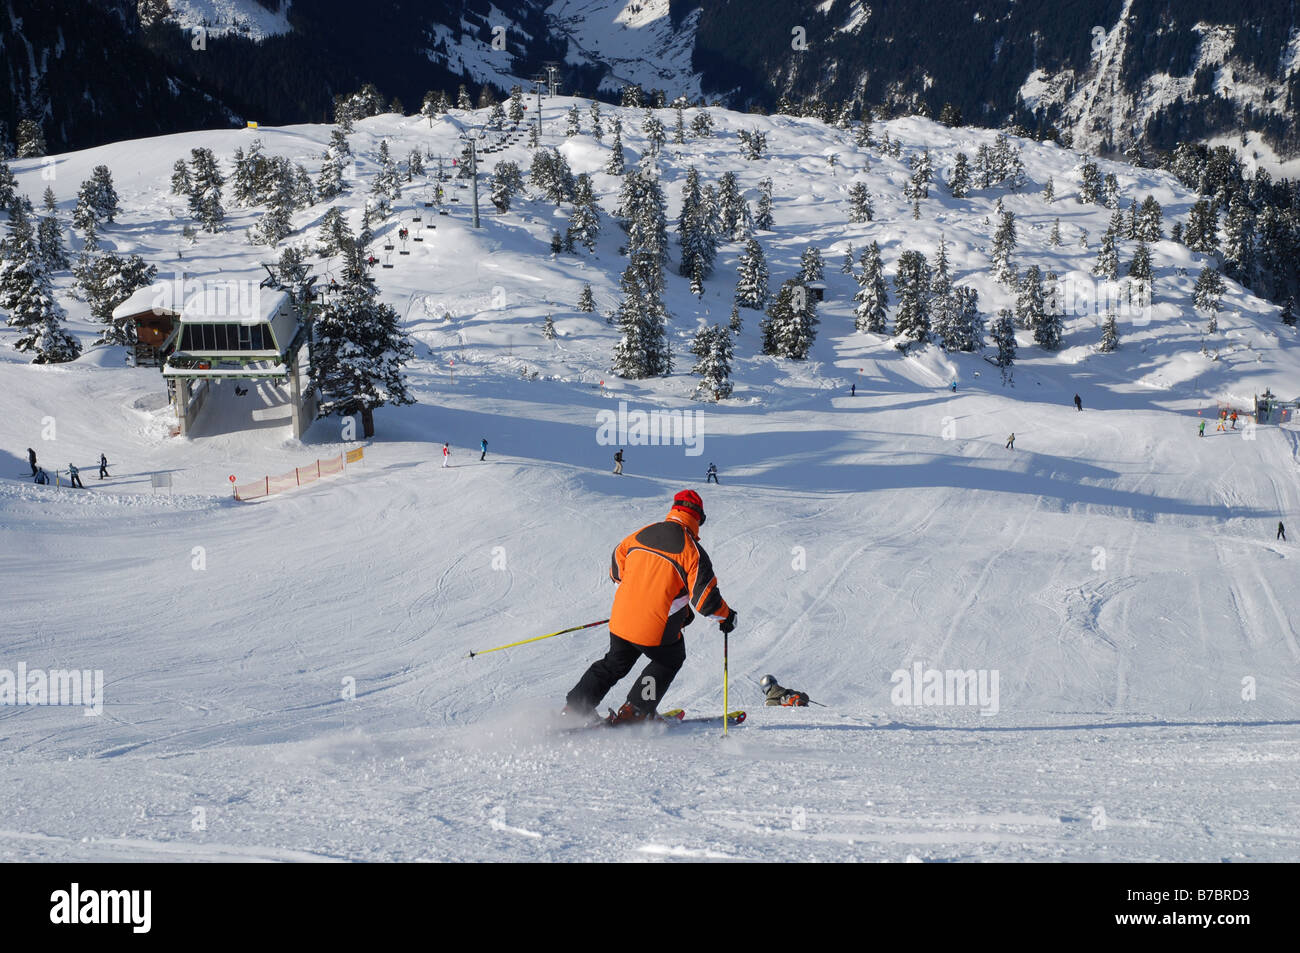 skiing in the Ahorn mountains Mayrhofen Austria - Stock Image